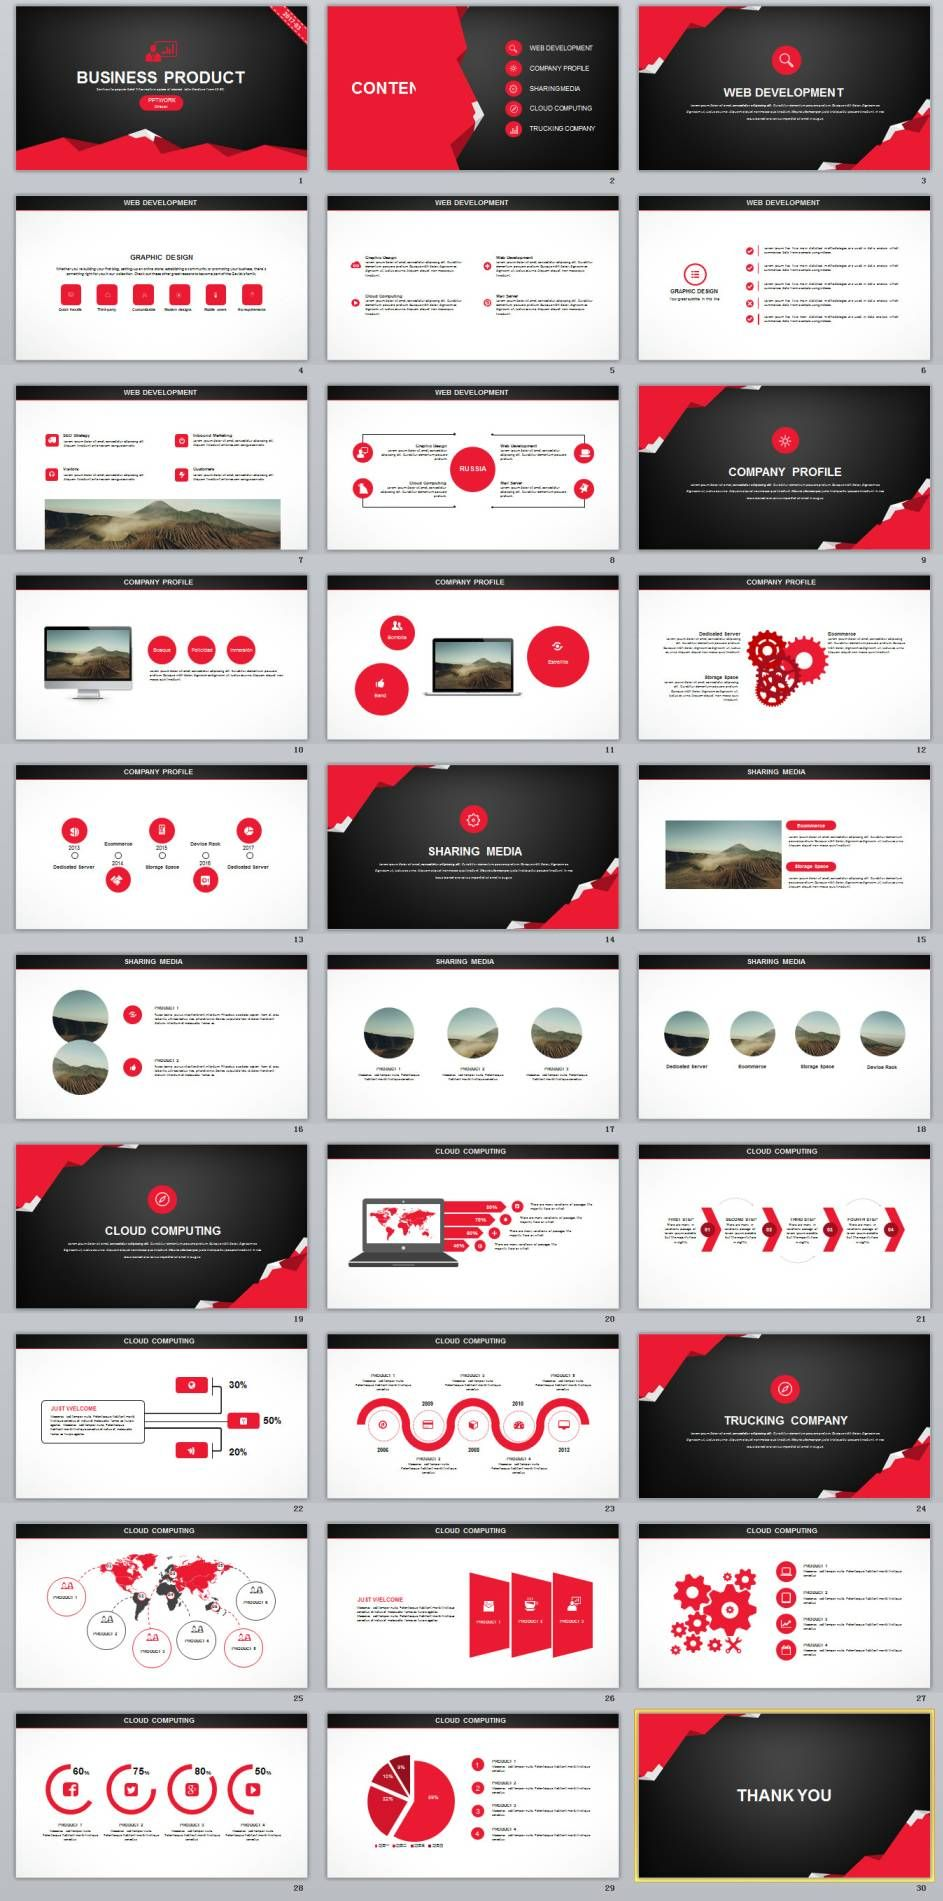 Creative Business Product Plan Powerpoint Template